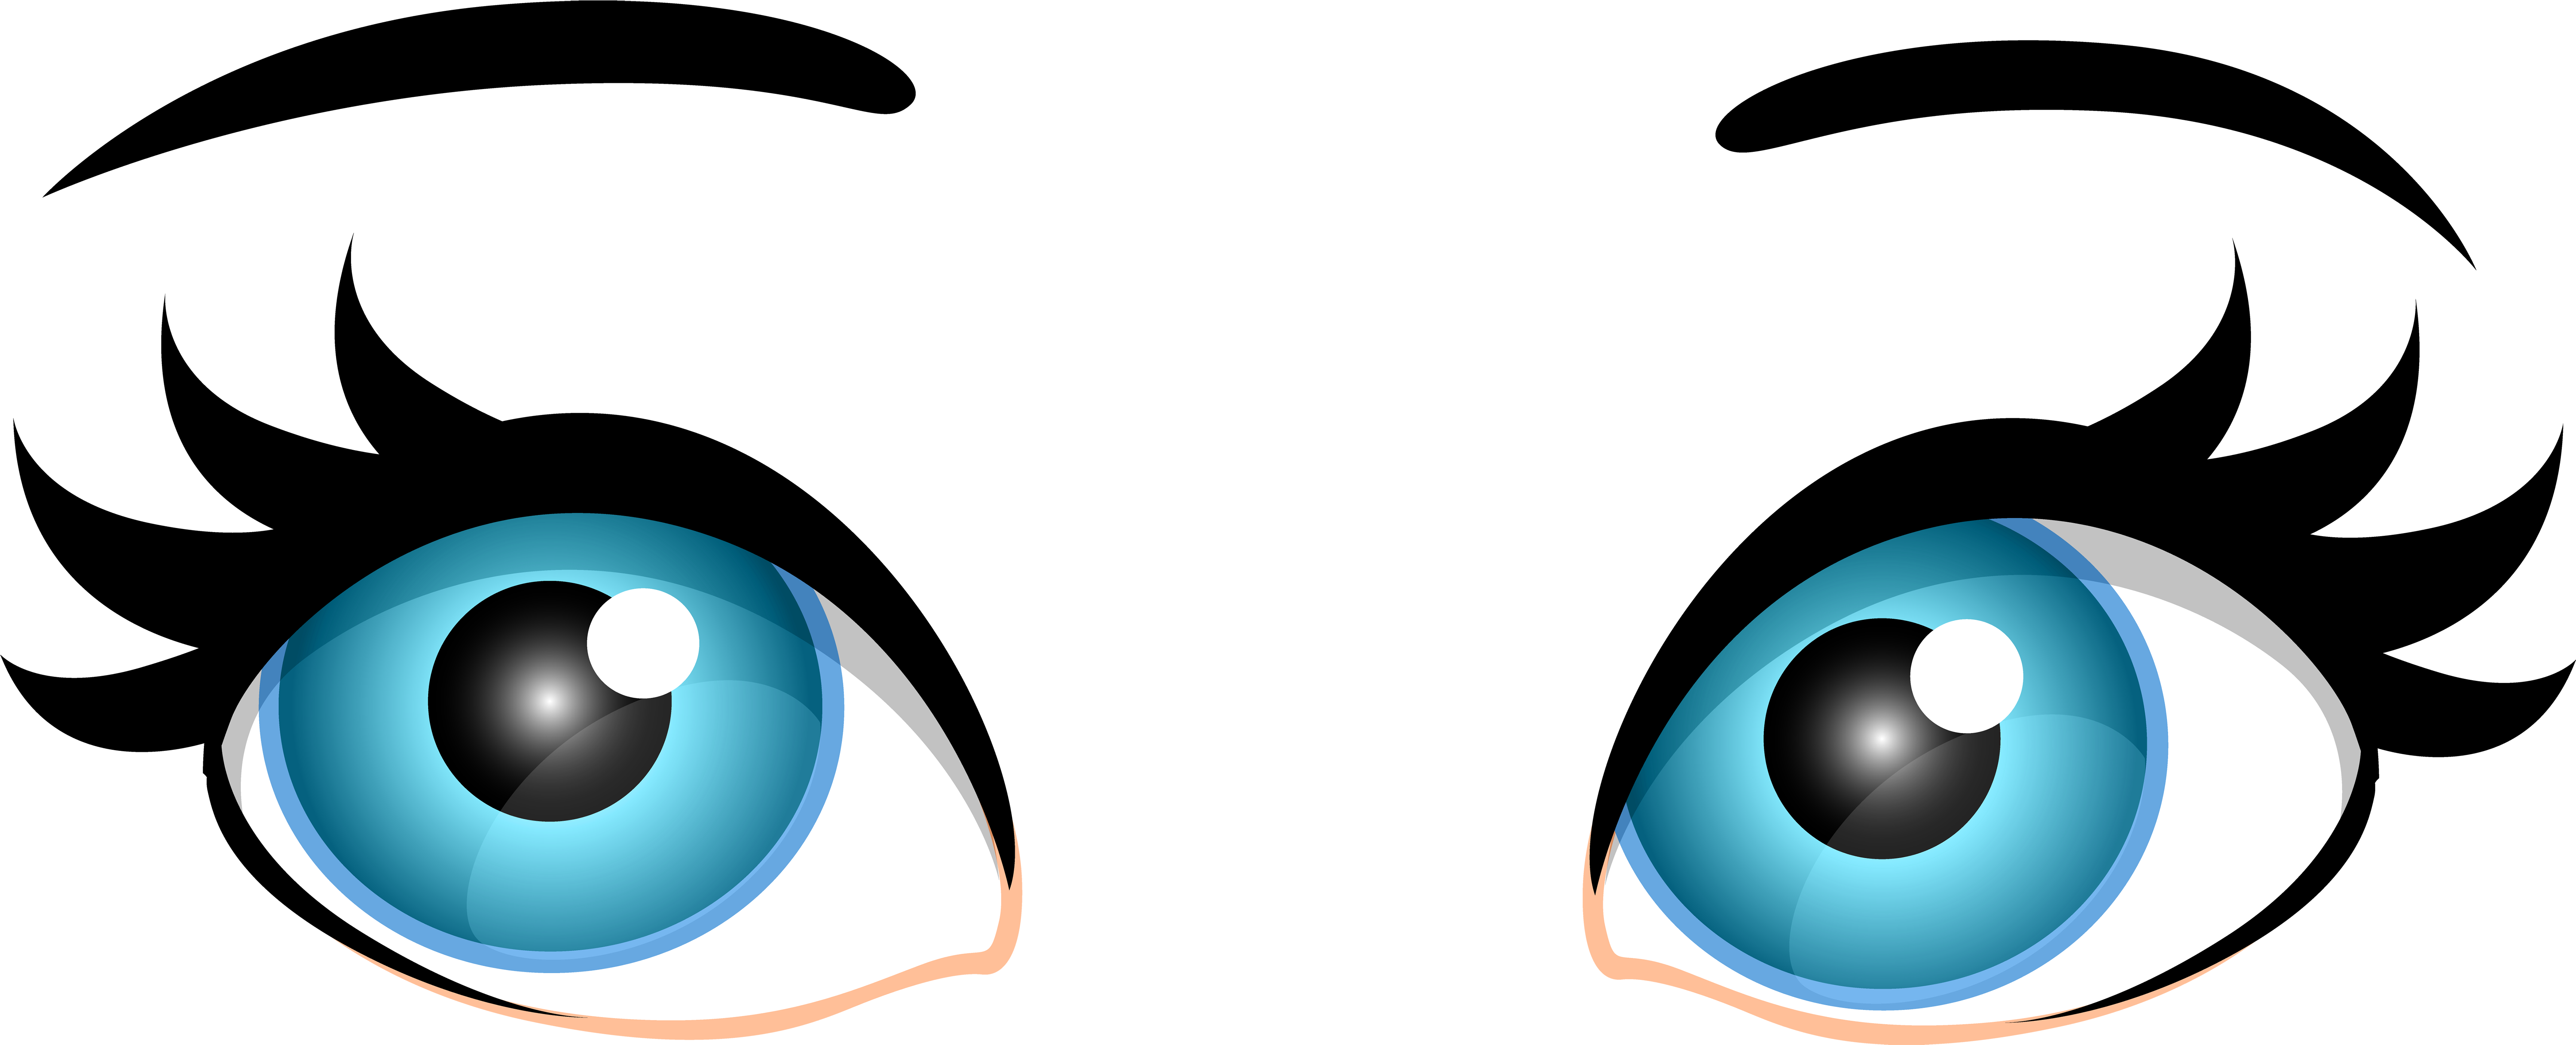 vector library library Of audio eyes and. Eye clipart